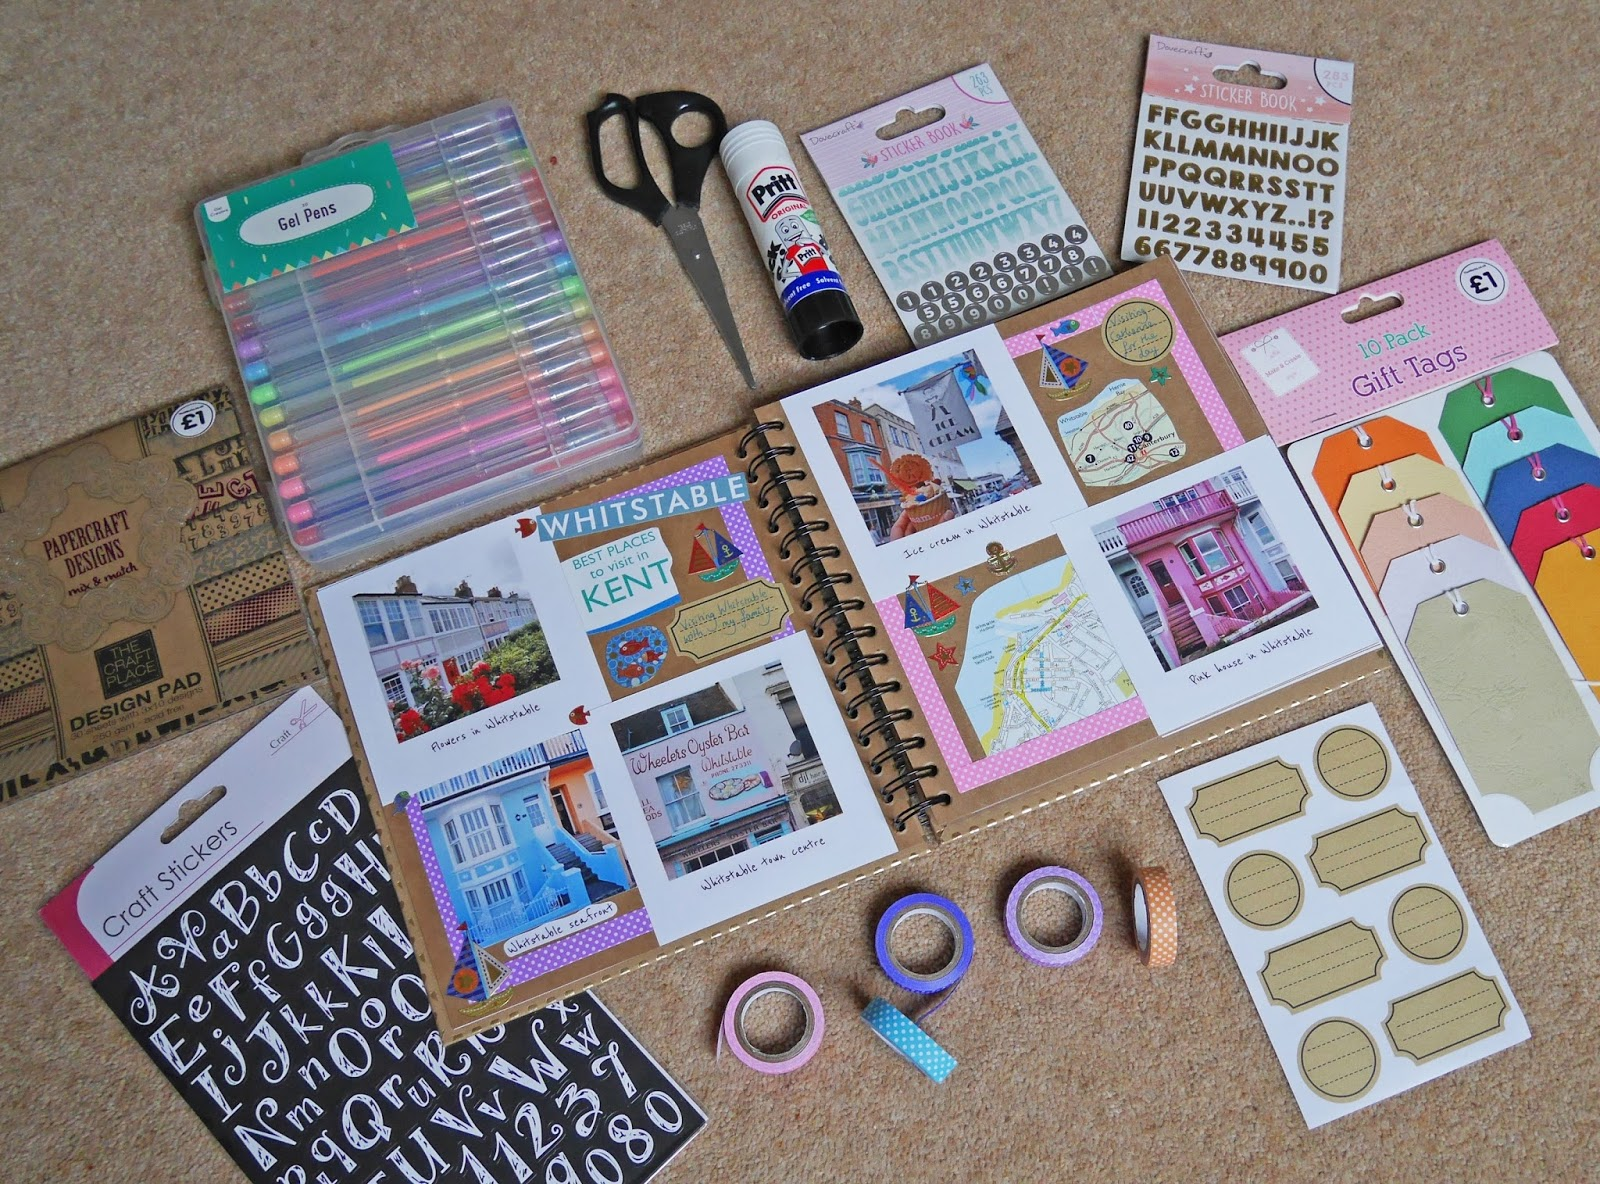 Scrapbooking starter kit for beginners - backing paper, stickers, washi tape and more